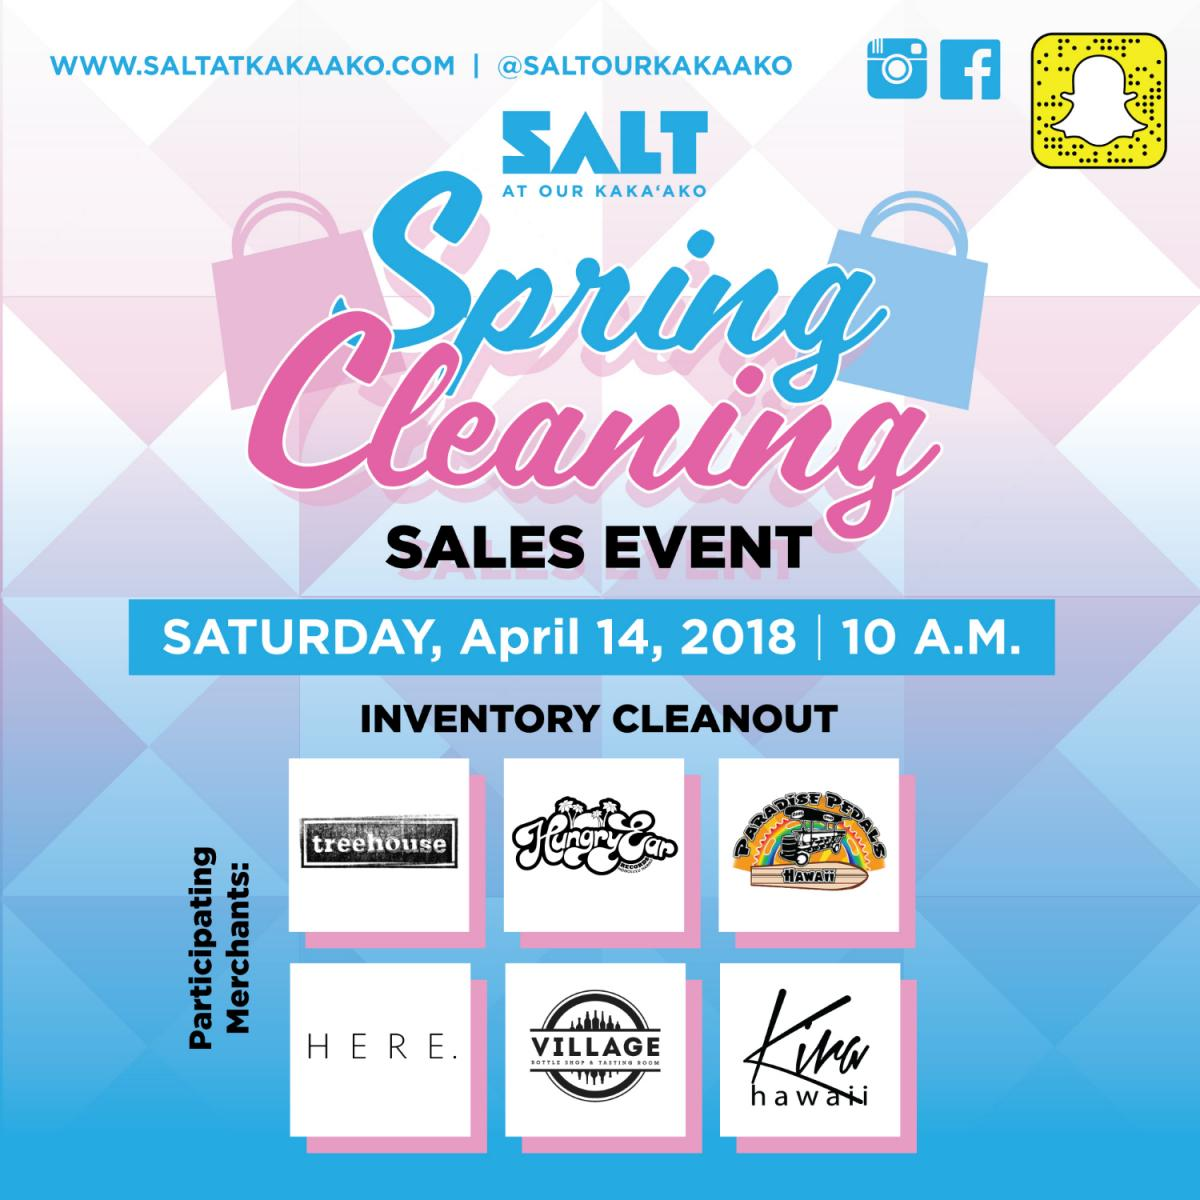 DISCOVER DEALS AT SALT SPRING CLEANING, APRIL 14